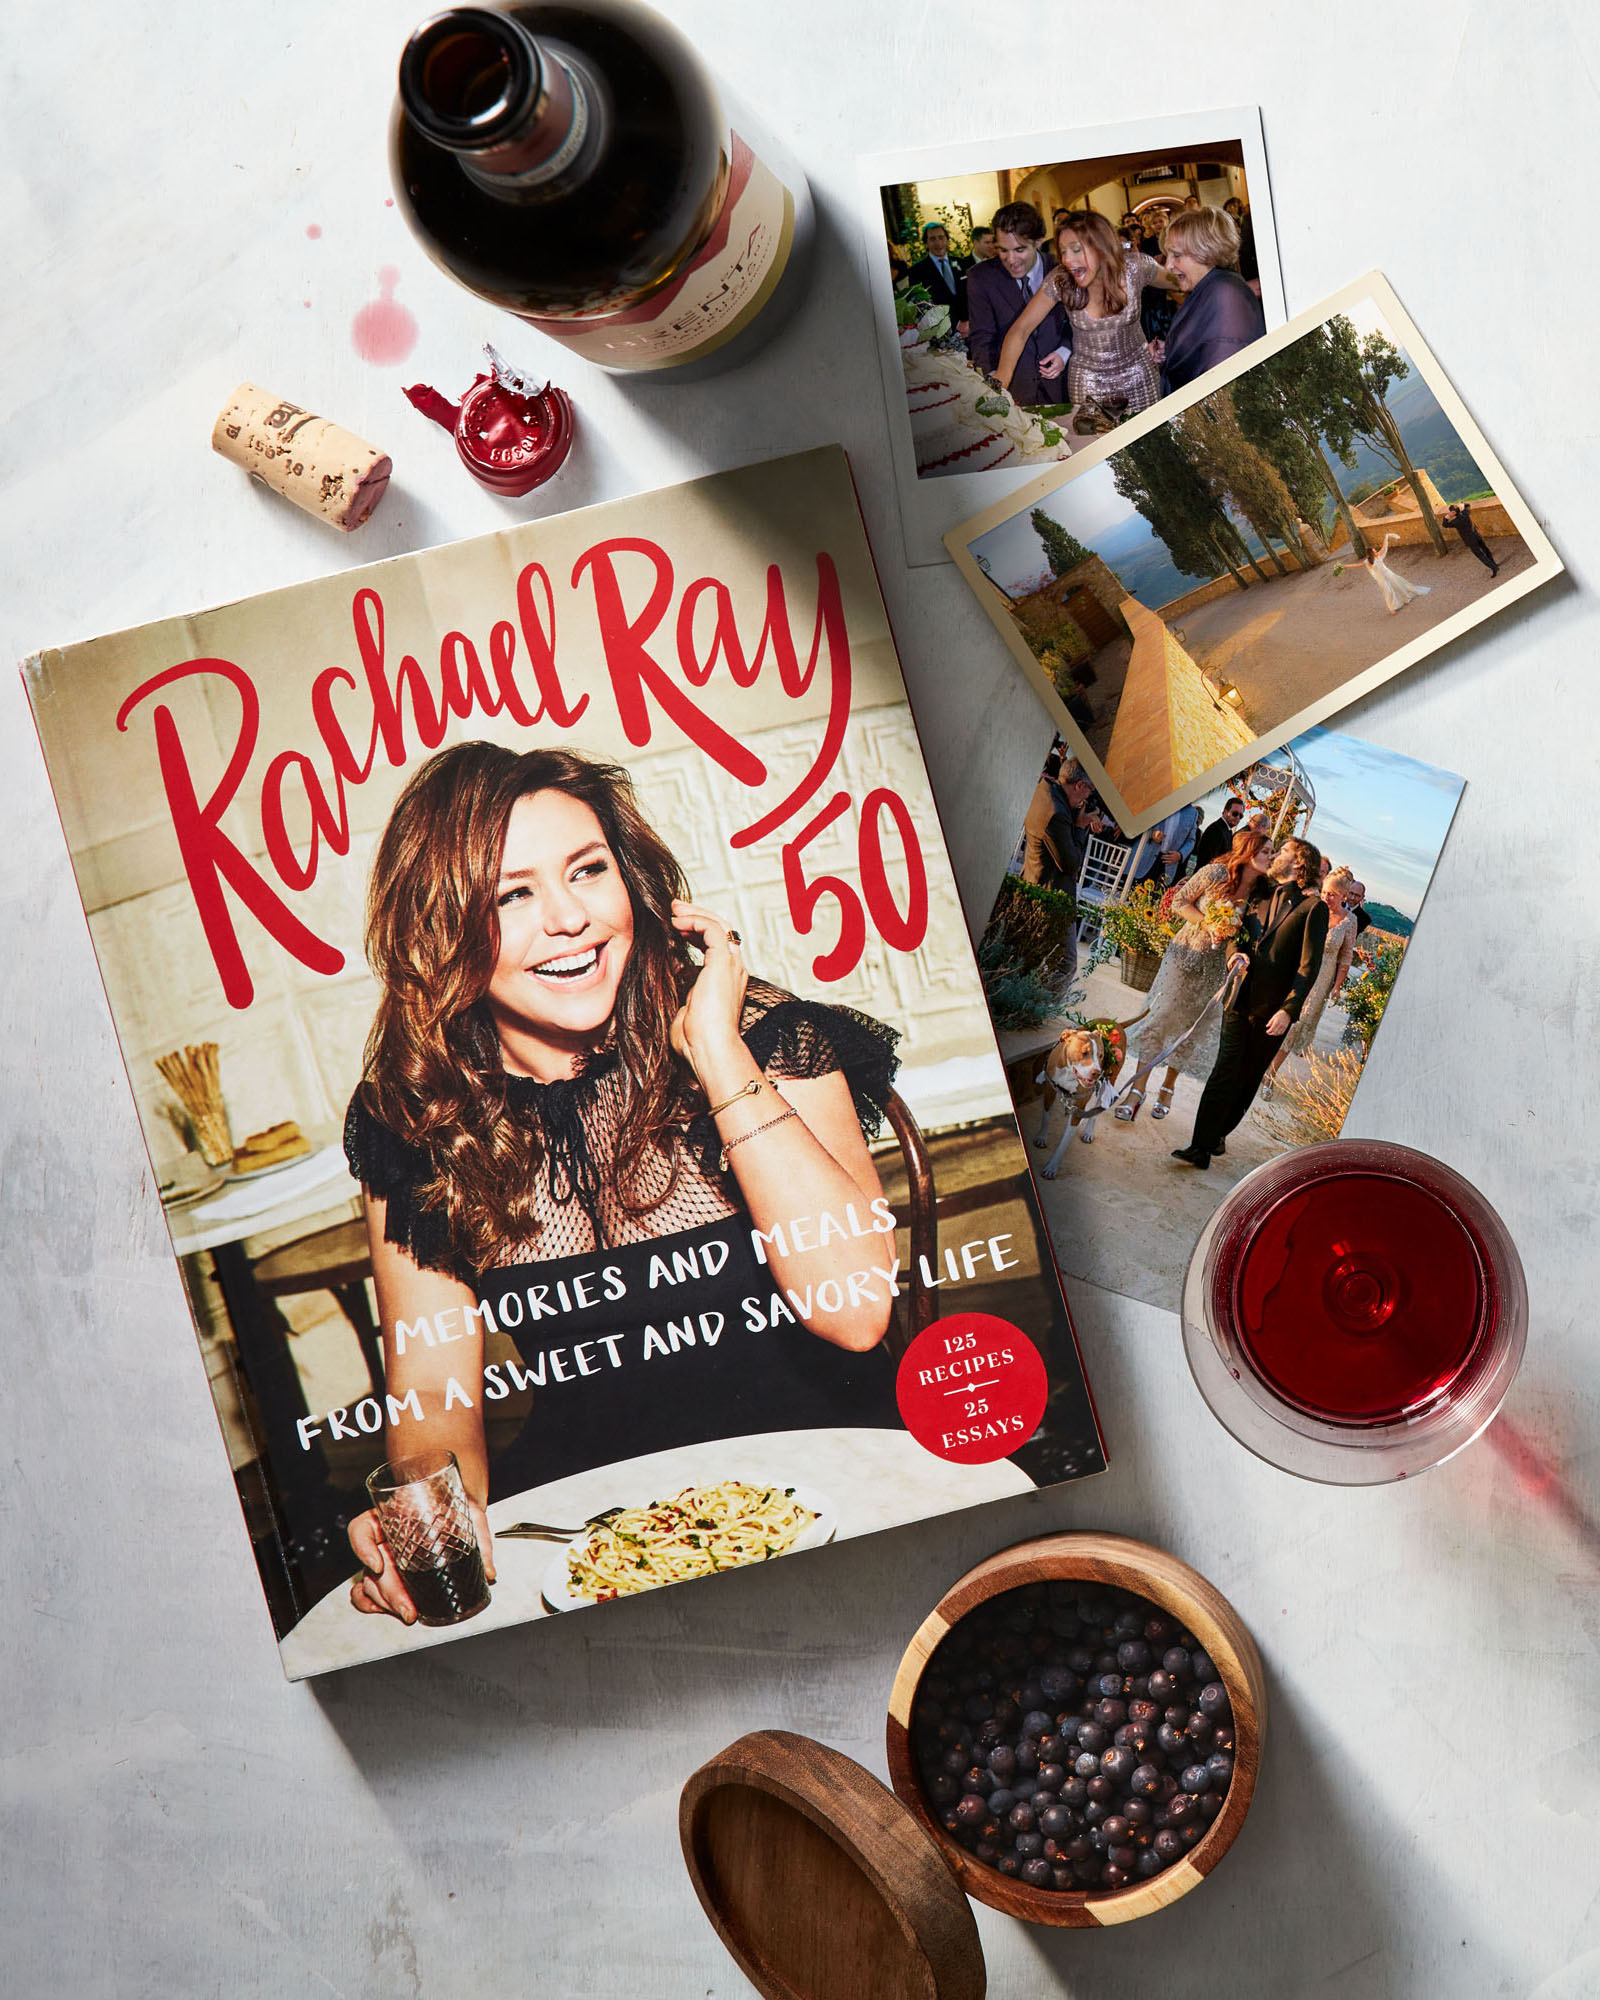 rachael ray 50 book cover and wedding photographs